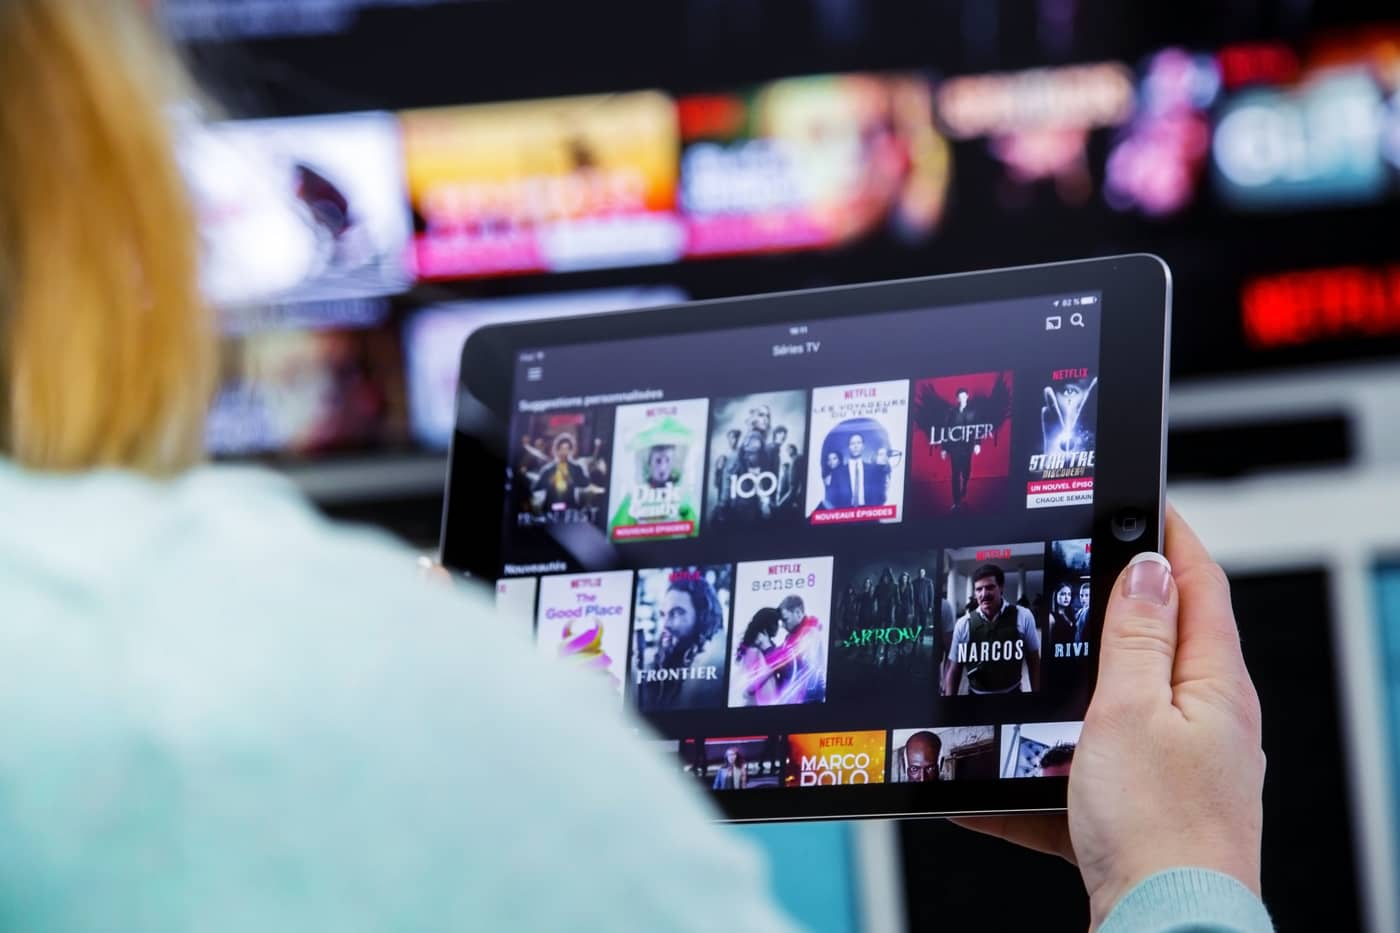 The 30 best free online movie streaming sites in October 2021 - PrivacySavvy